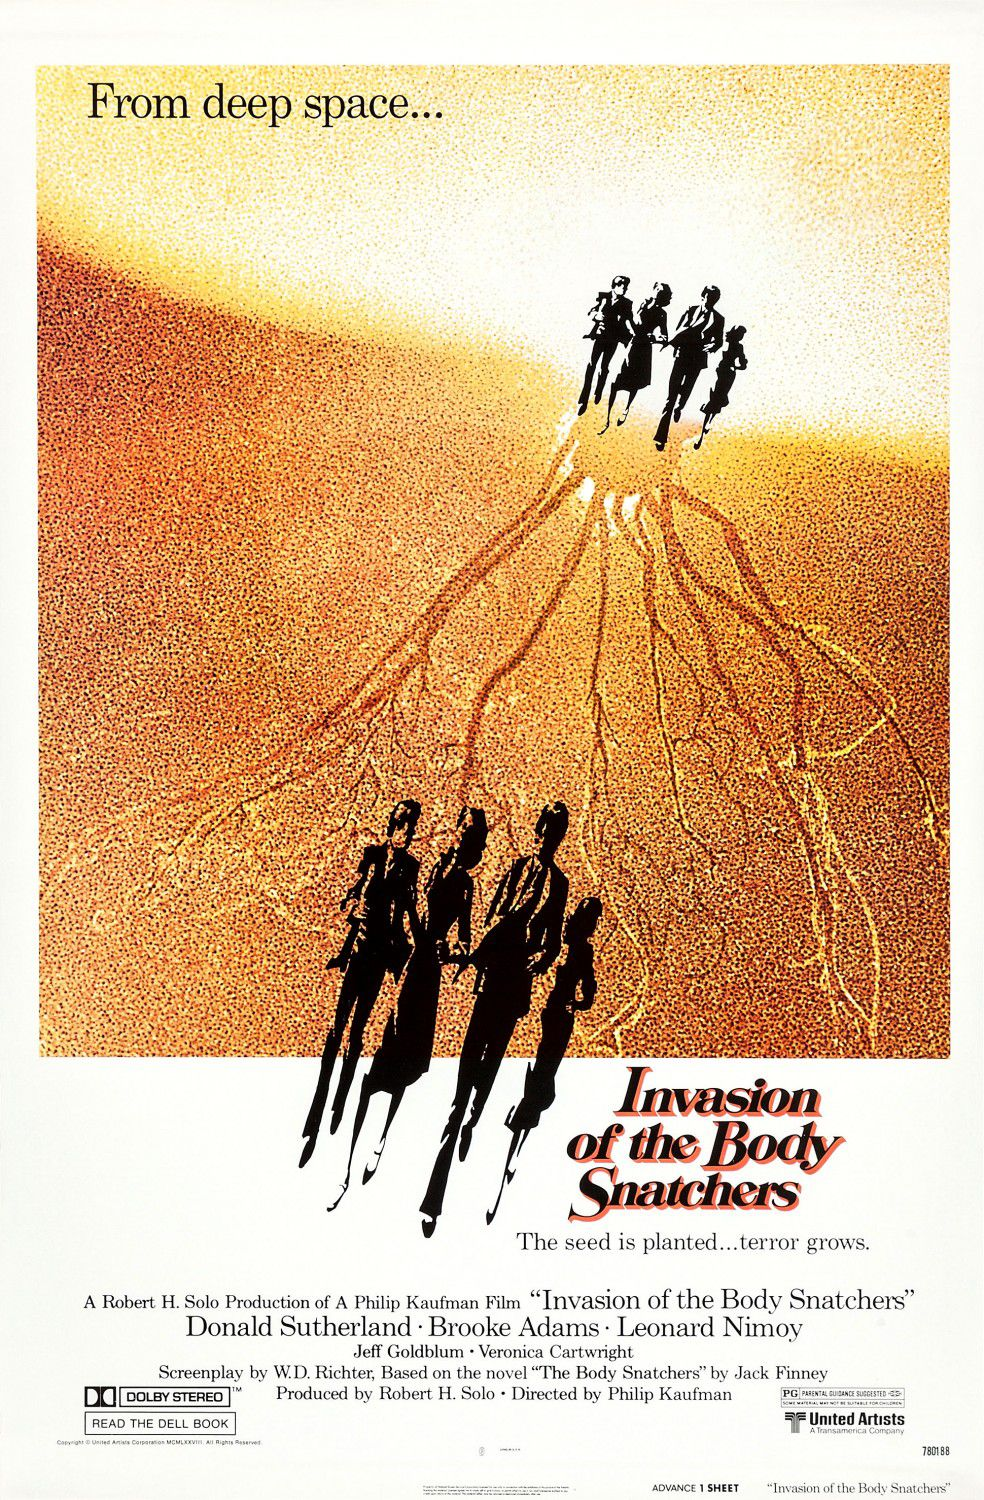 Invasion of the Body snatchers - from deep space, the seed is planted, terror grows - A Robert H. Solo production of a Philip Kaufman film - Donald Sutherland - Broke Adams - Leonard Nimoy - Jeff Goldblum - Veronica Cartwright - Invasione Ultracorpi - remake 1978 - classic scifi science fiction fantascienza movie film poster cult cinema